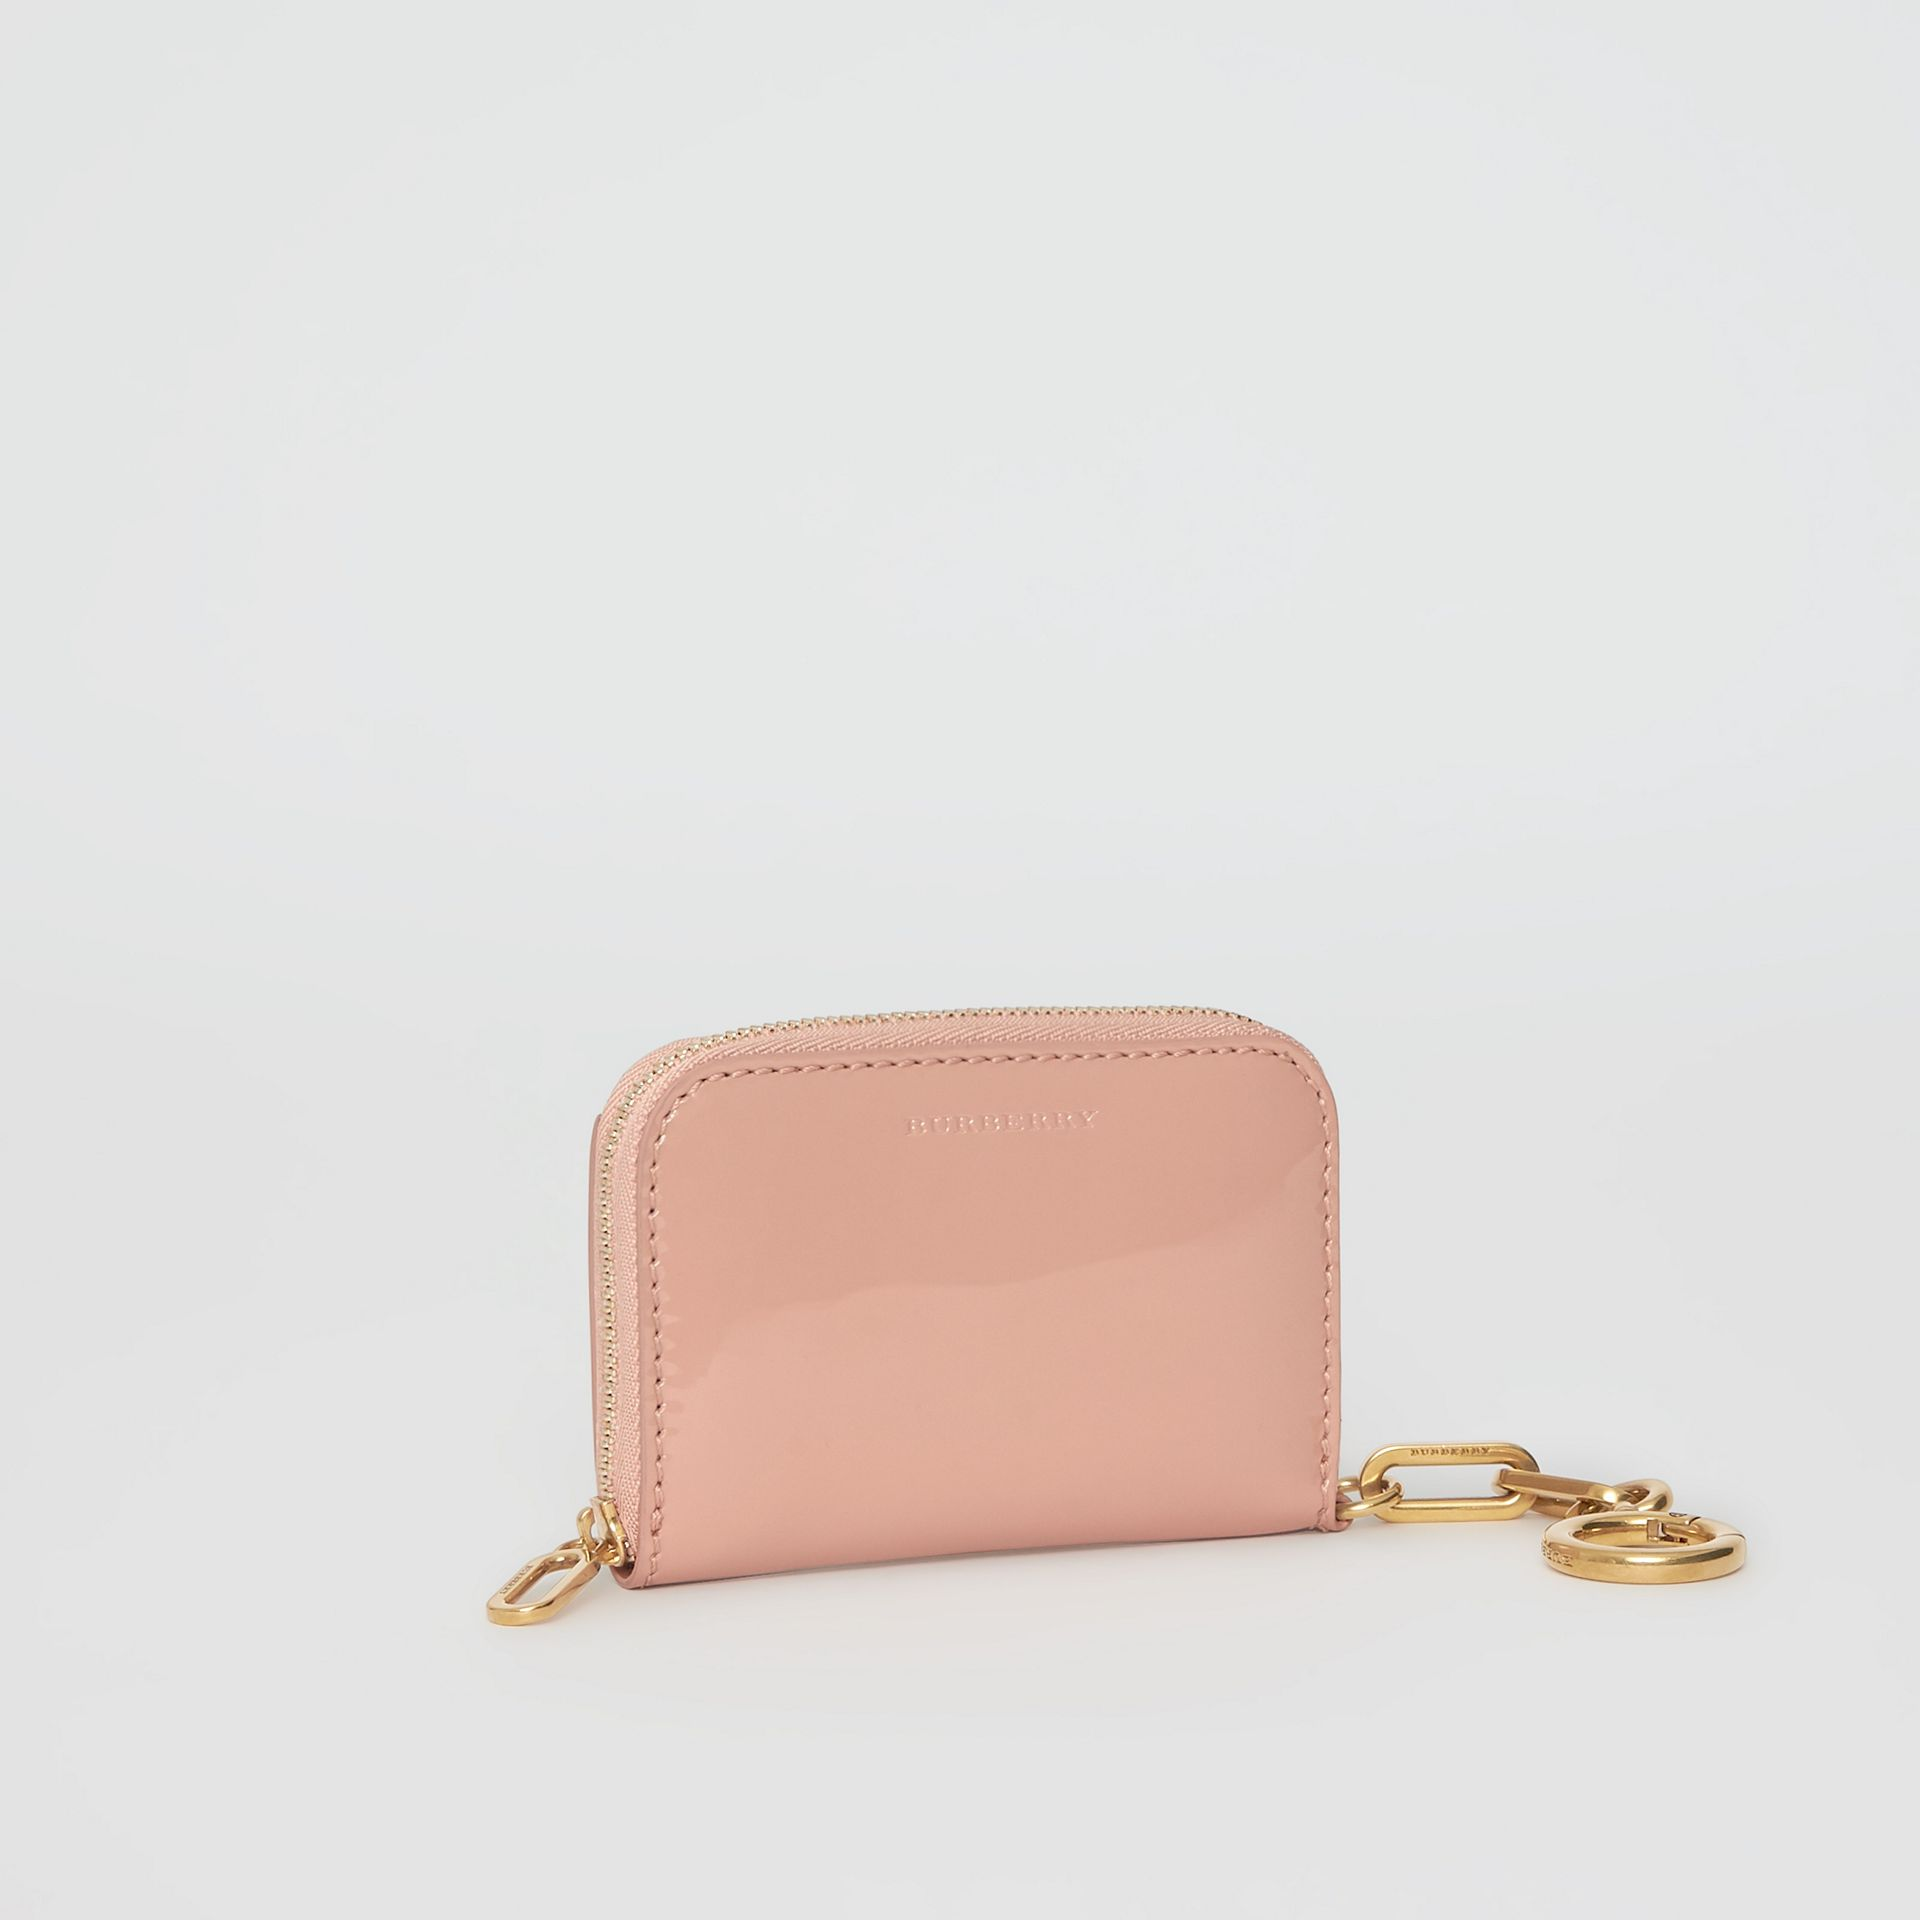 Link Detail Patent Leather Ziparound Wallet in Pale Fawn Pink - Women | Burberry Canada - gallery image 4